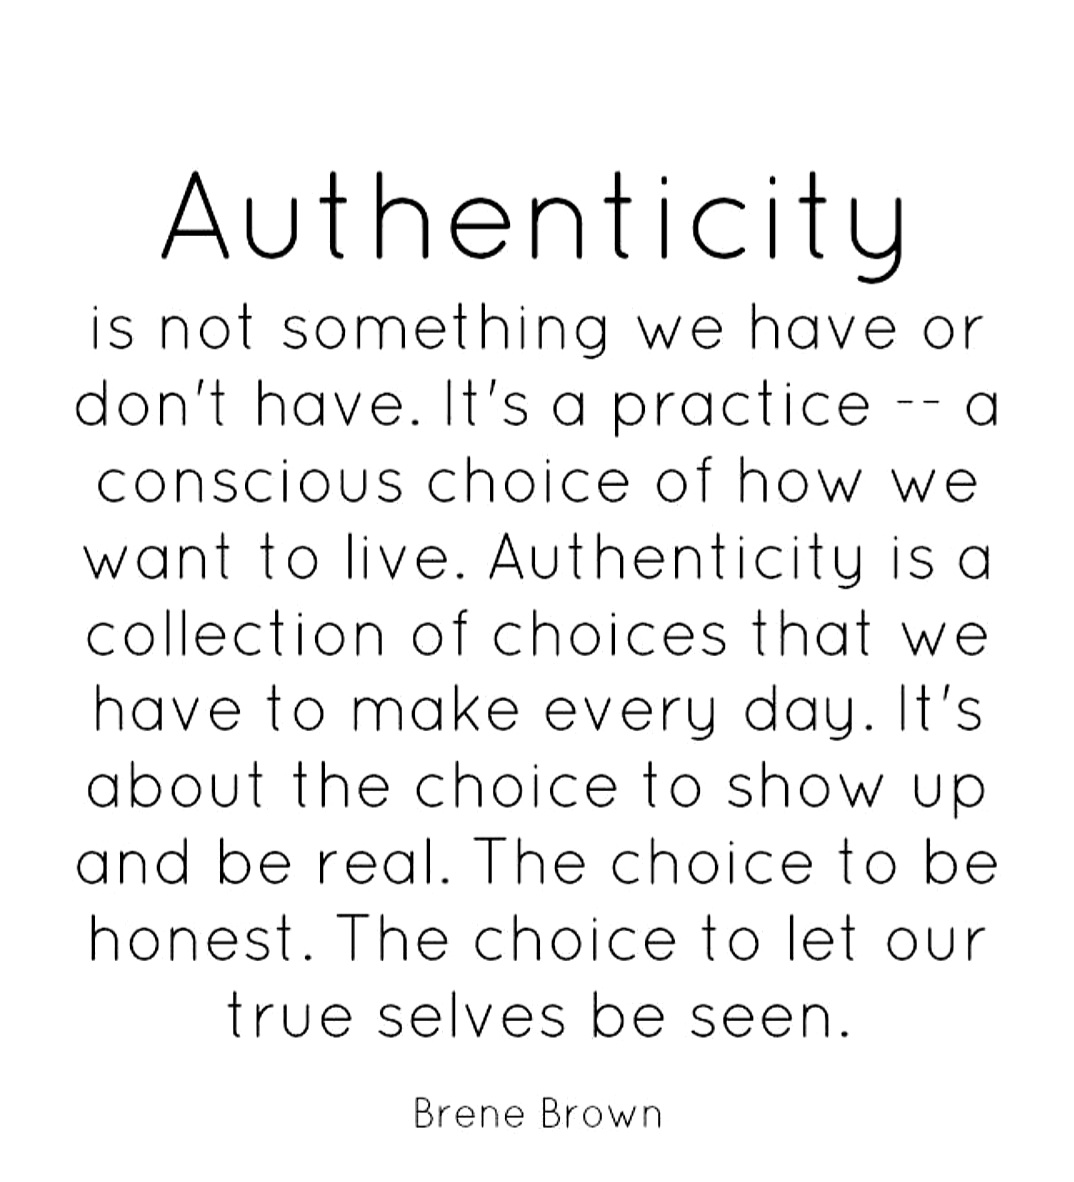 When you distil it down. Which 2 personality traits are the absolute cornerstone of who a person is? For me its Integrity & authenticity. You? 🤔💜 @ChristallaJ @MissBTeaches_  @MrsKatieSmith @nhanak80 @KyrstieStubbs @artteachjess @Artology @headofwoodlands @mini_lebowski https://t.co/wZCBoyZREc